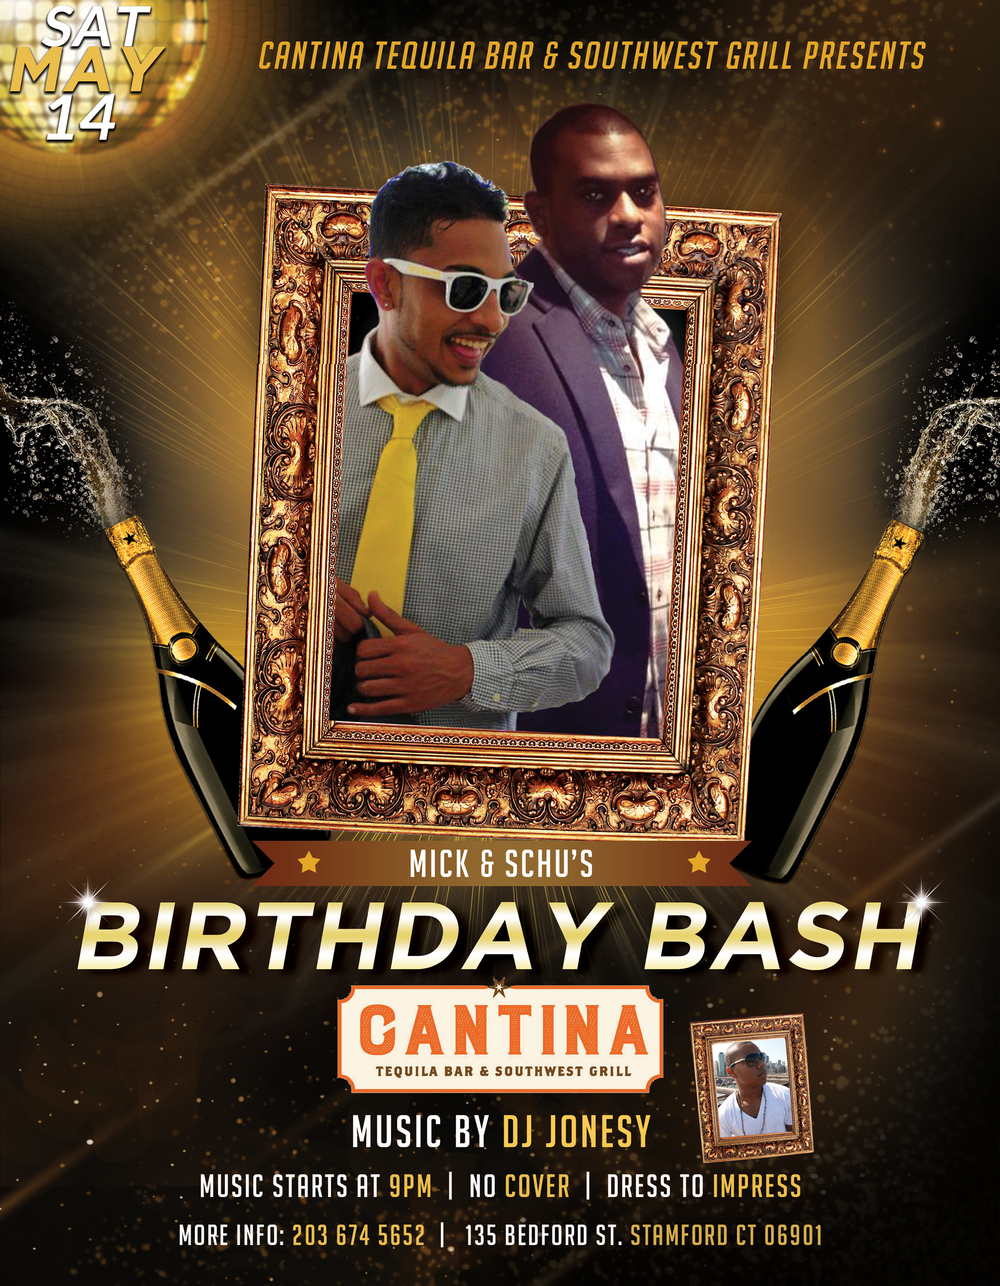 SATURDAY, MAY 14TH JOIN US AT CANTINA TEQUILA BAR & SOUTHWEST GRILL FOR A BIRTHDAY BASH YOU WON'T WANT TO MISS FOR MY BEST HOMIES MICK + SCHU!  NO COVER + DRESS TO IMPRESS.  MUSIC BY YOURS TRULY 9PM-CLOSE!